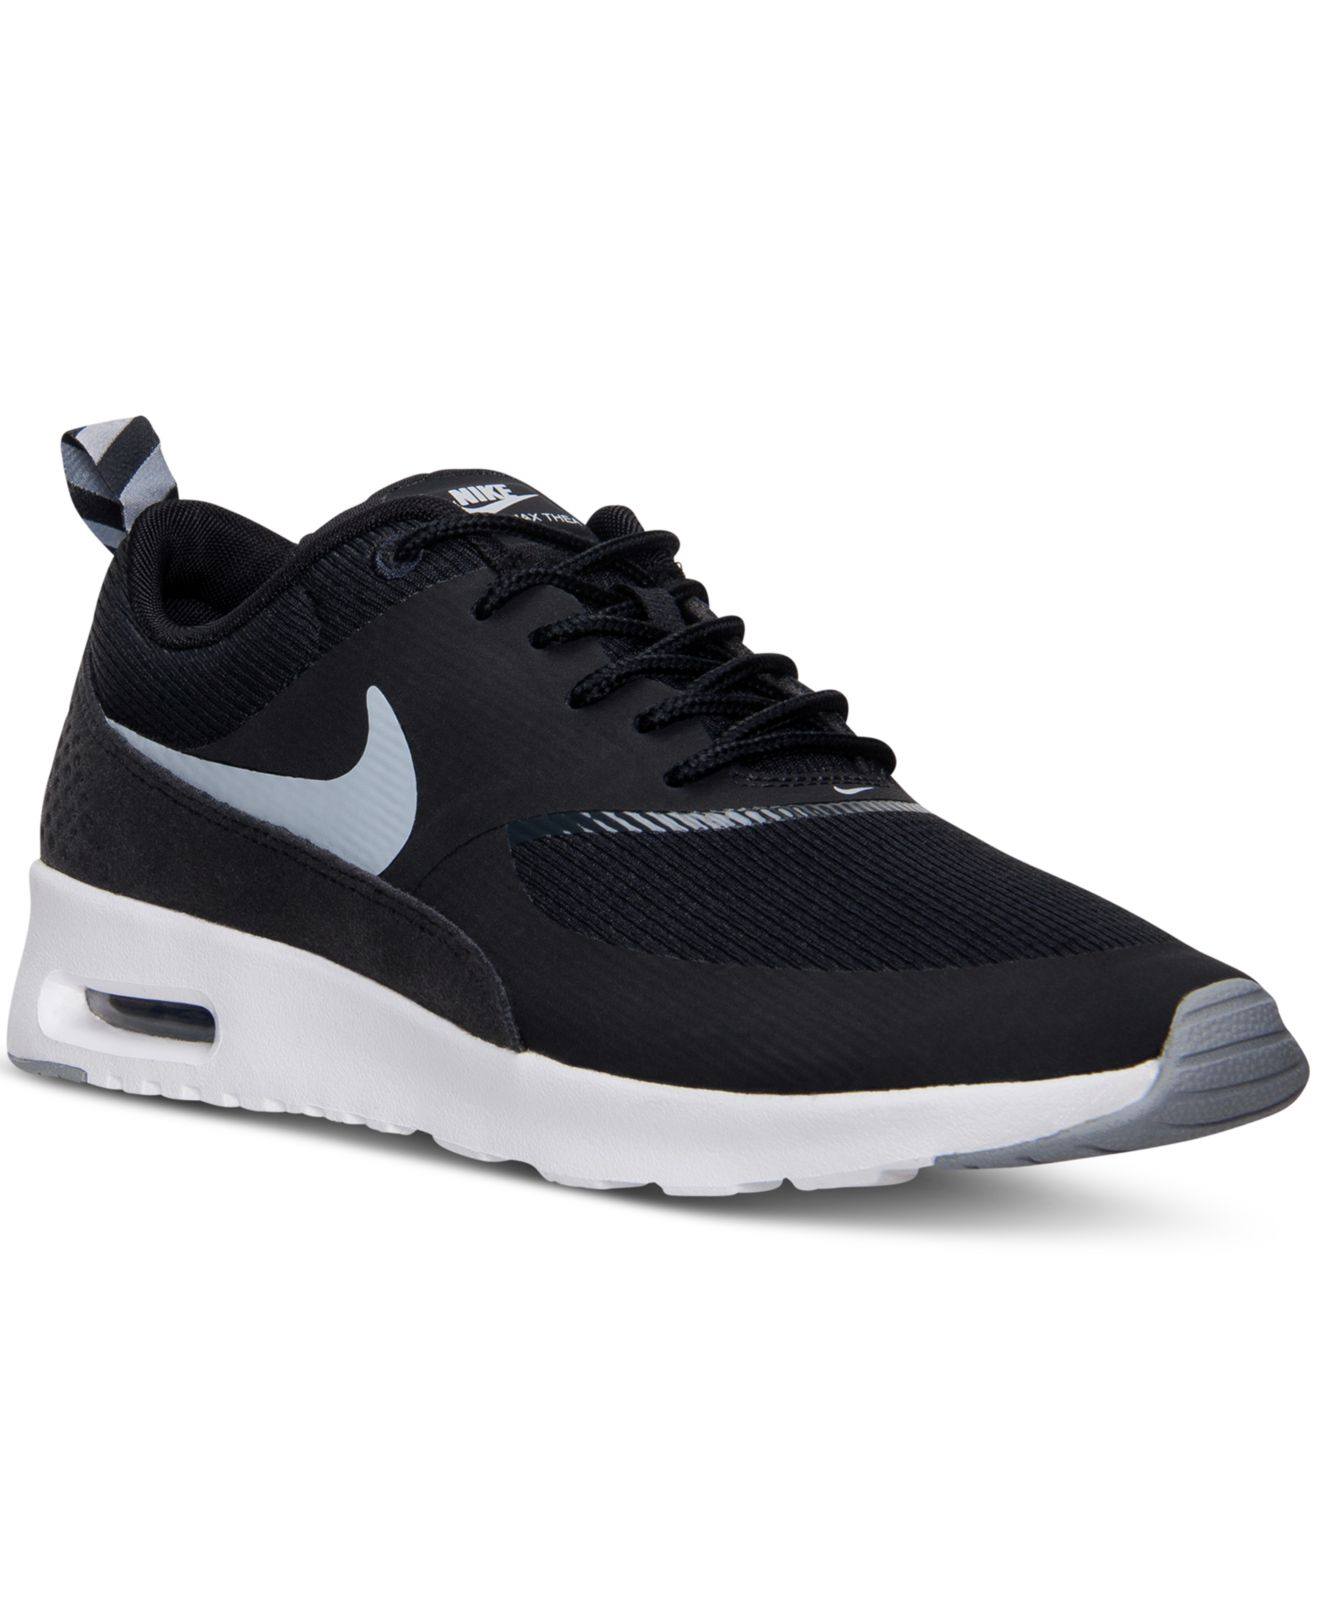 sports shoes dab09 43942 ... shoes 63887 5499d  wholesale previously sold at macys womens nike air  max 6ab79 e09f2